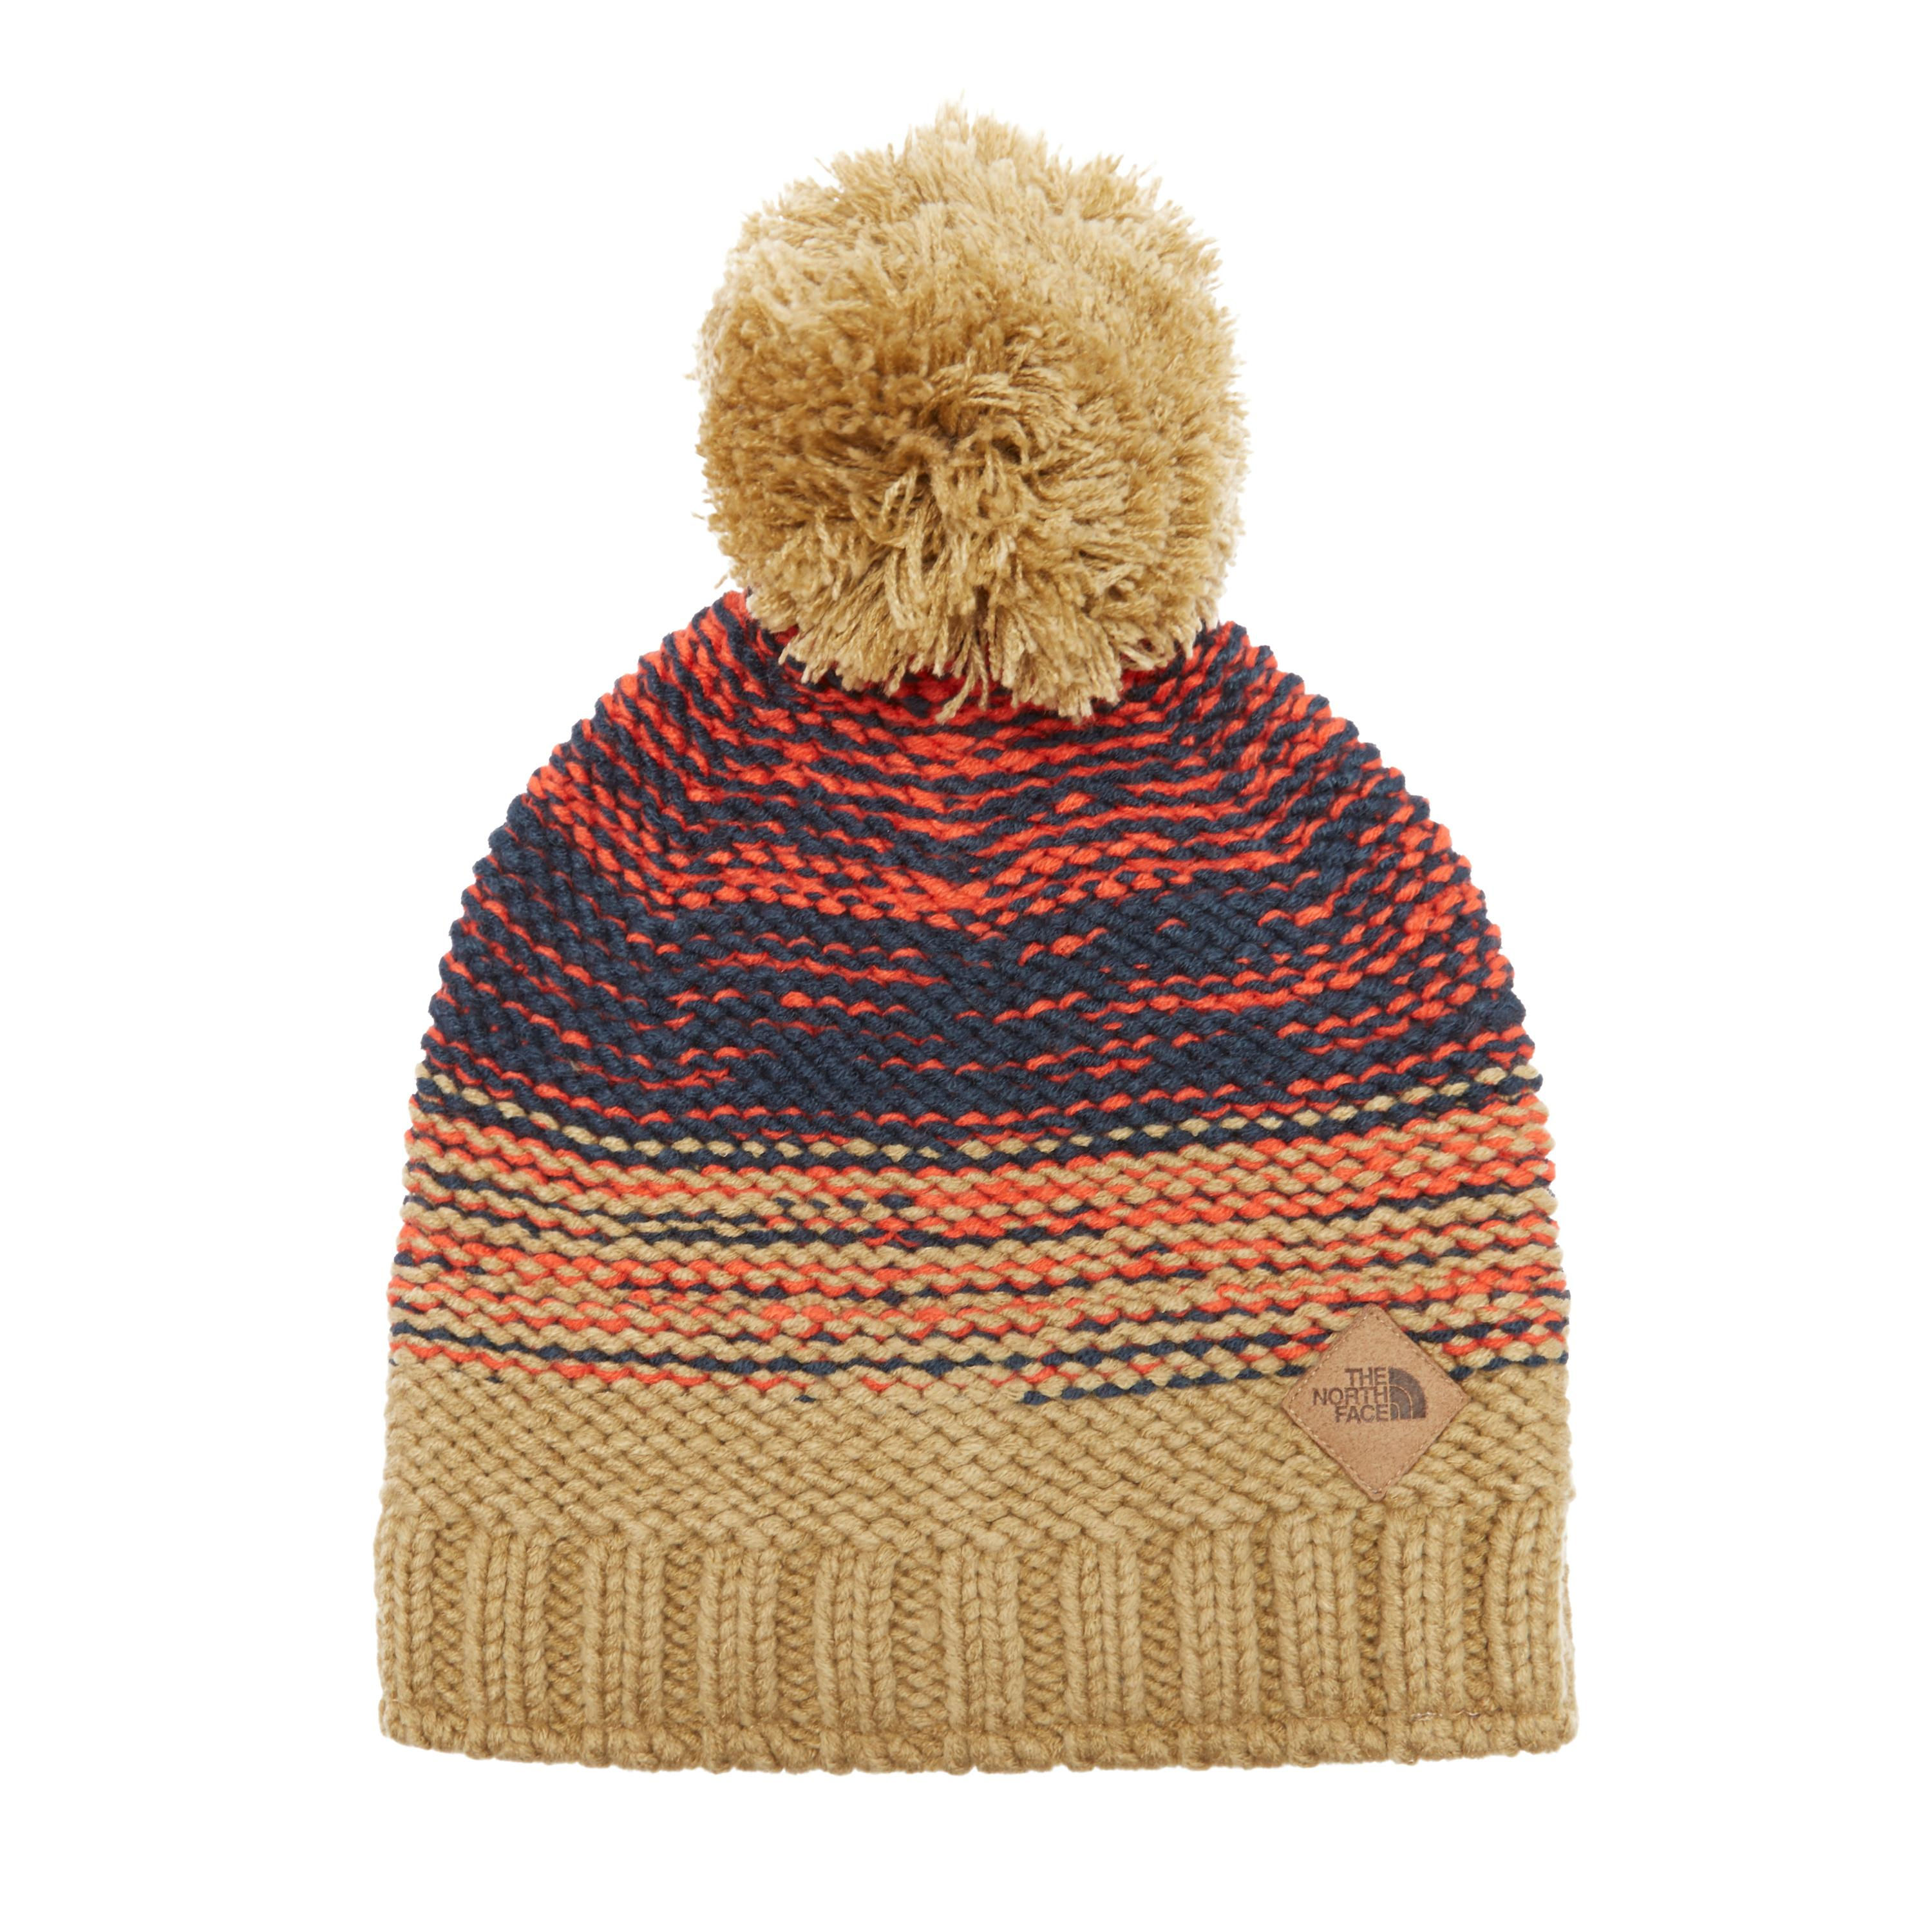 The North Face Men s Antlers Beanie Hat f1f69389d34